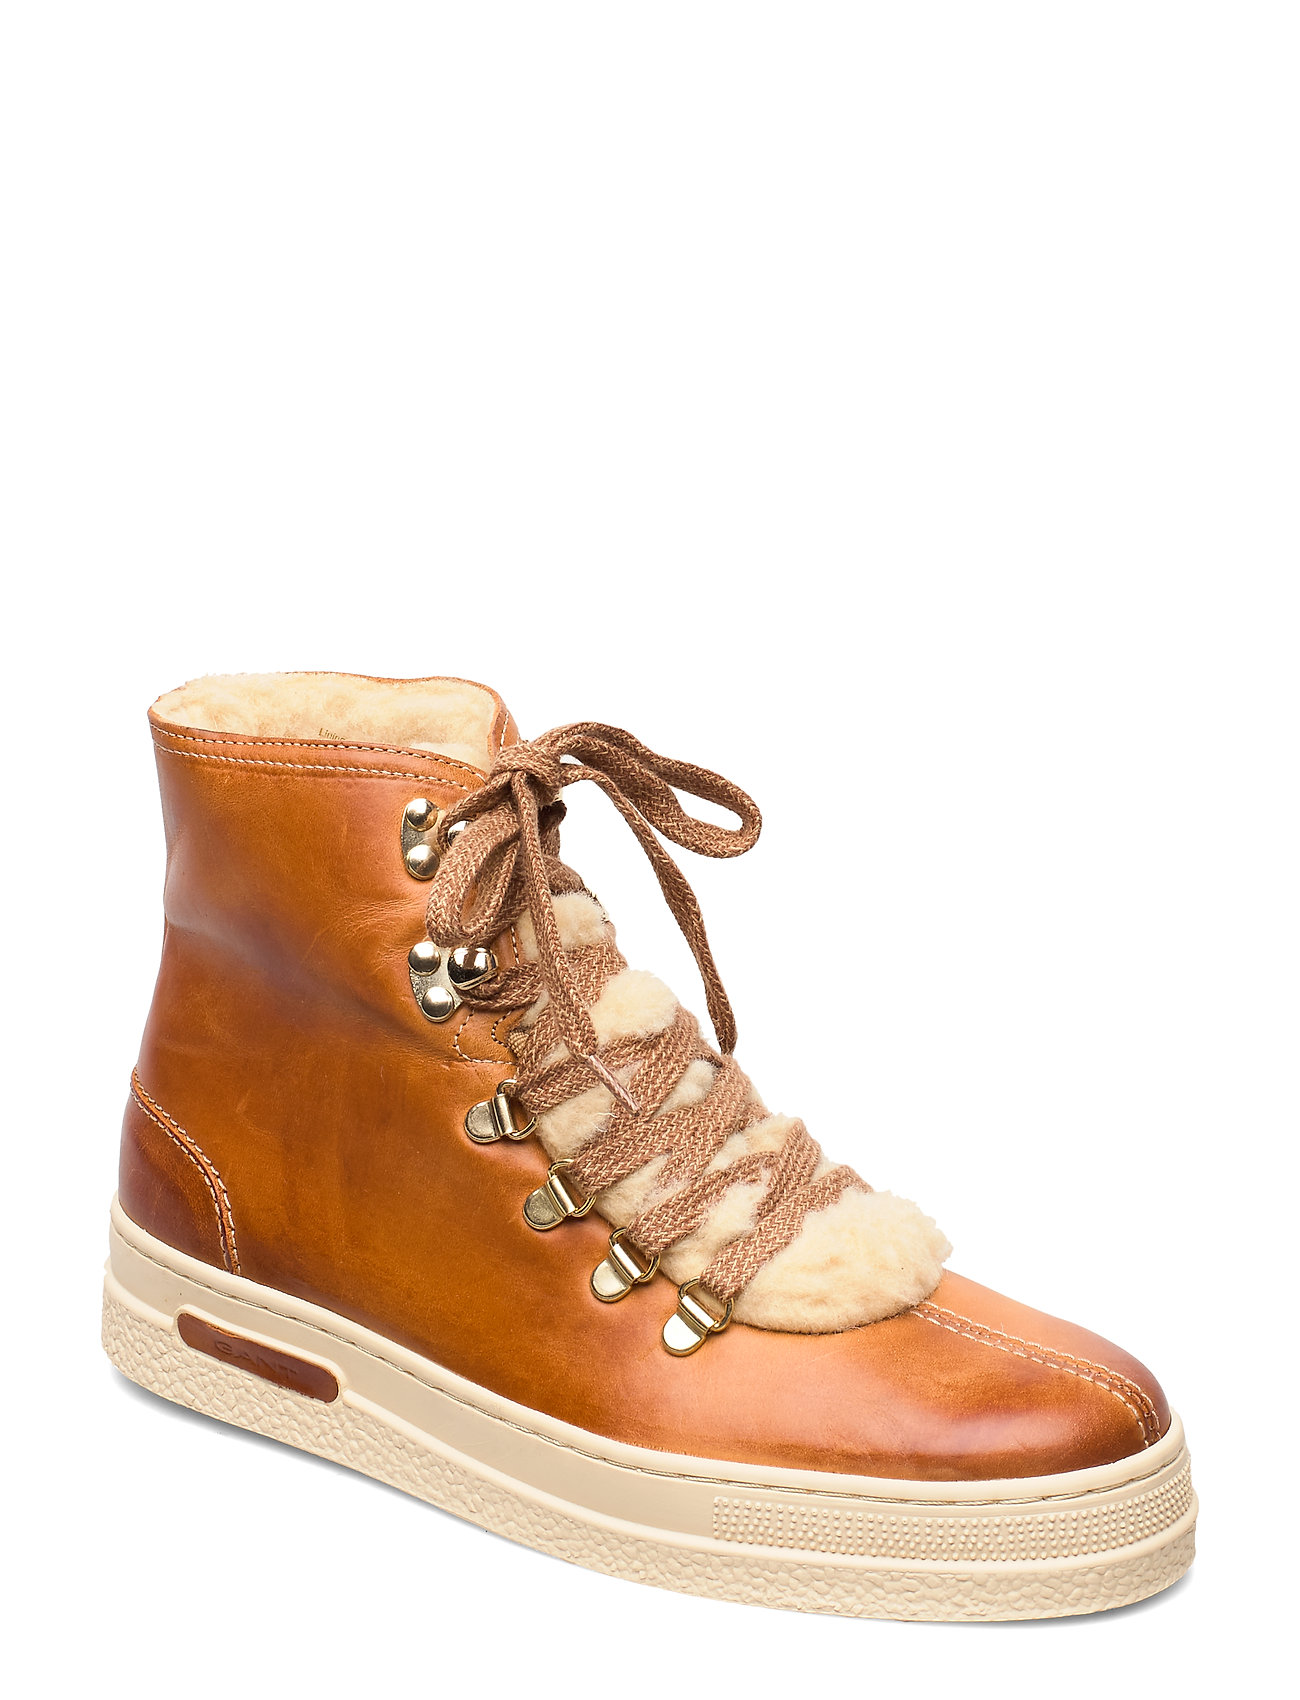 Image of Maria Mid Lace Boot Shoes Boots Ankle Boots Ankle Boots Flat Heel Brun GANT (3237675631)